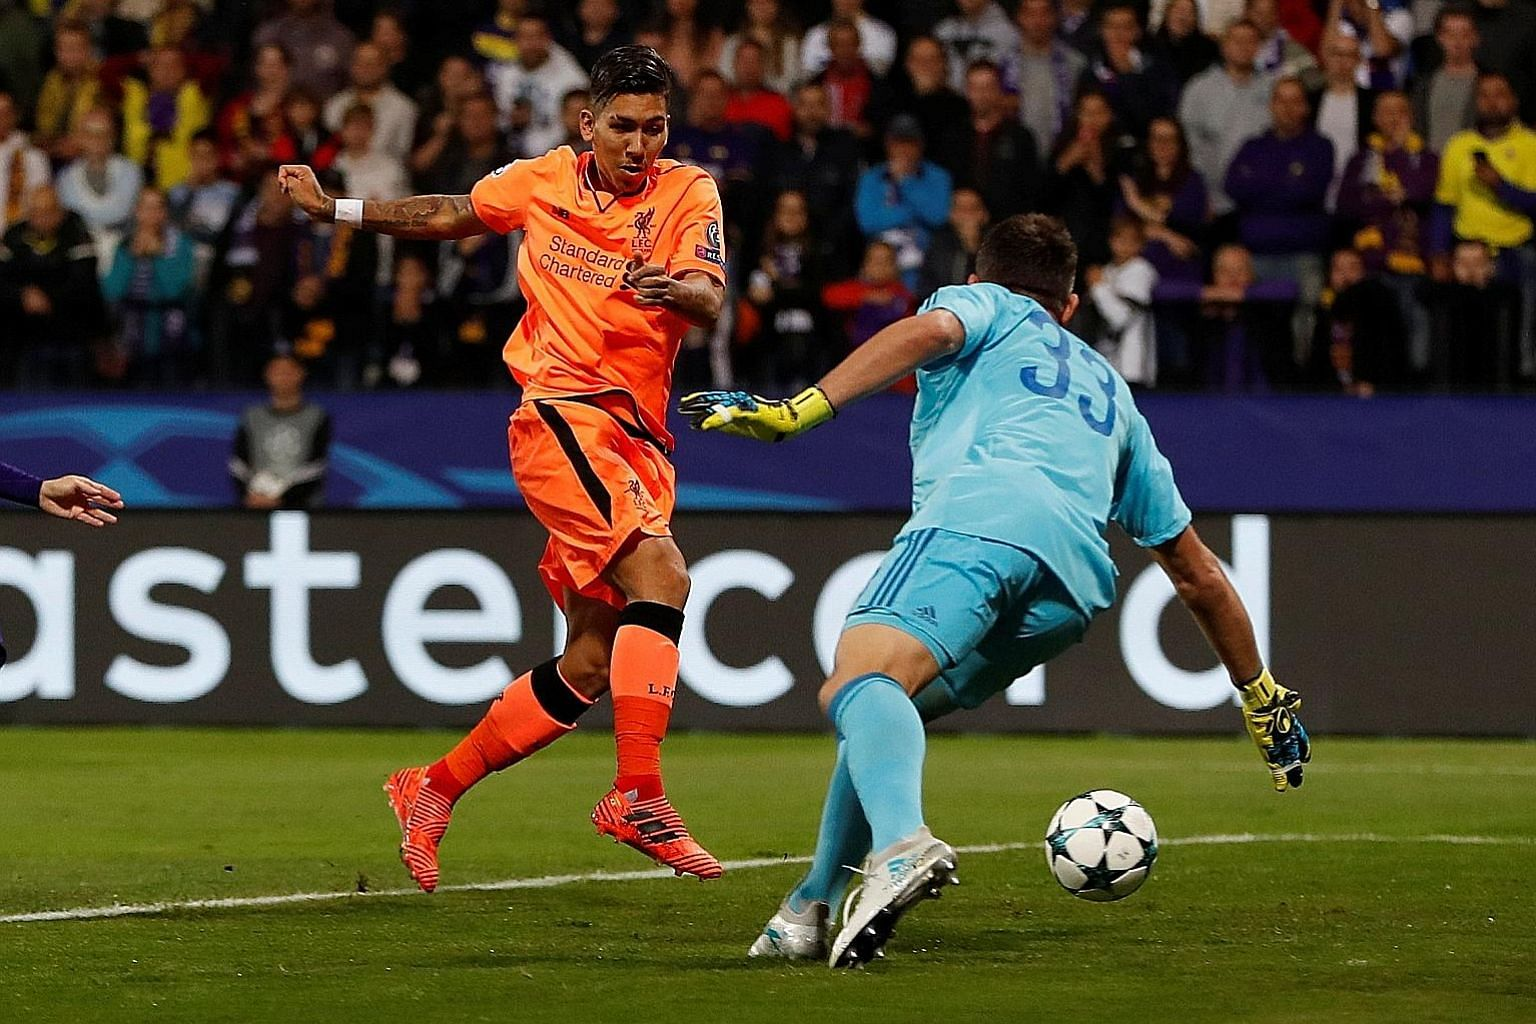 Liverpool forward Roberto Firmino opens the floodgates against Maribor with his fourth-minute strike. The Reds would add a further six goals.